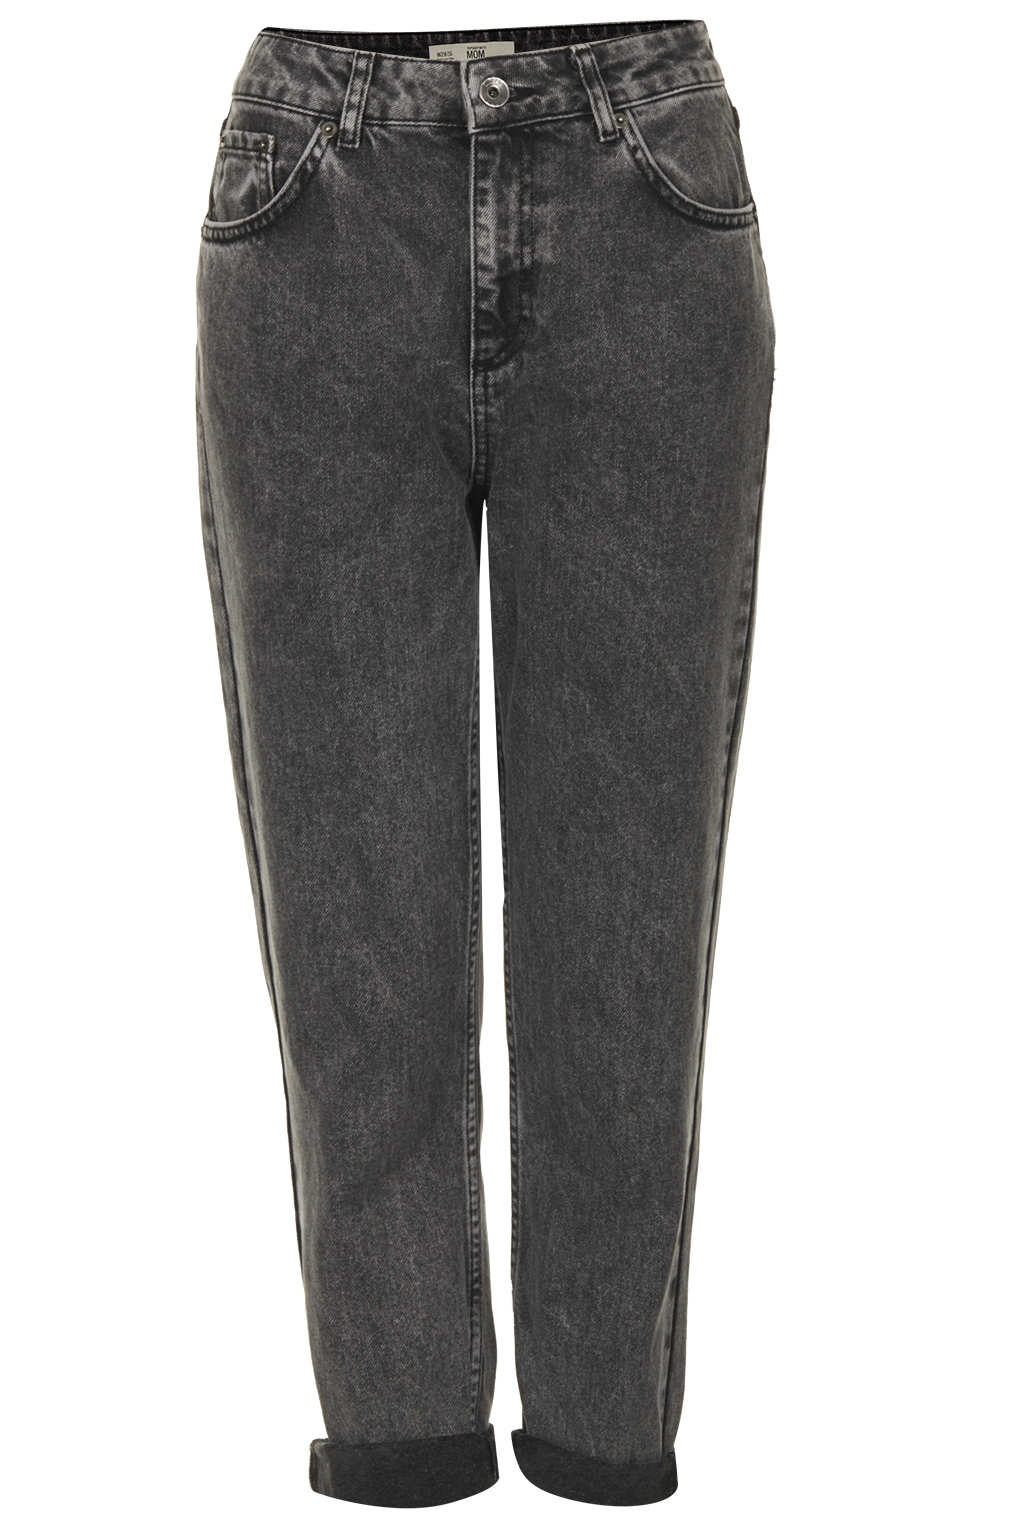 Topshop Moto Washed Black Jeans in Black | Lyst